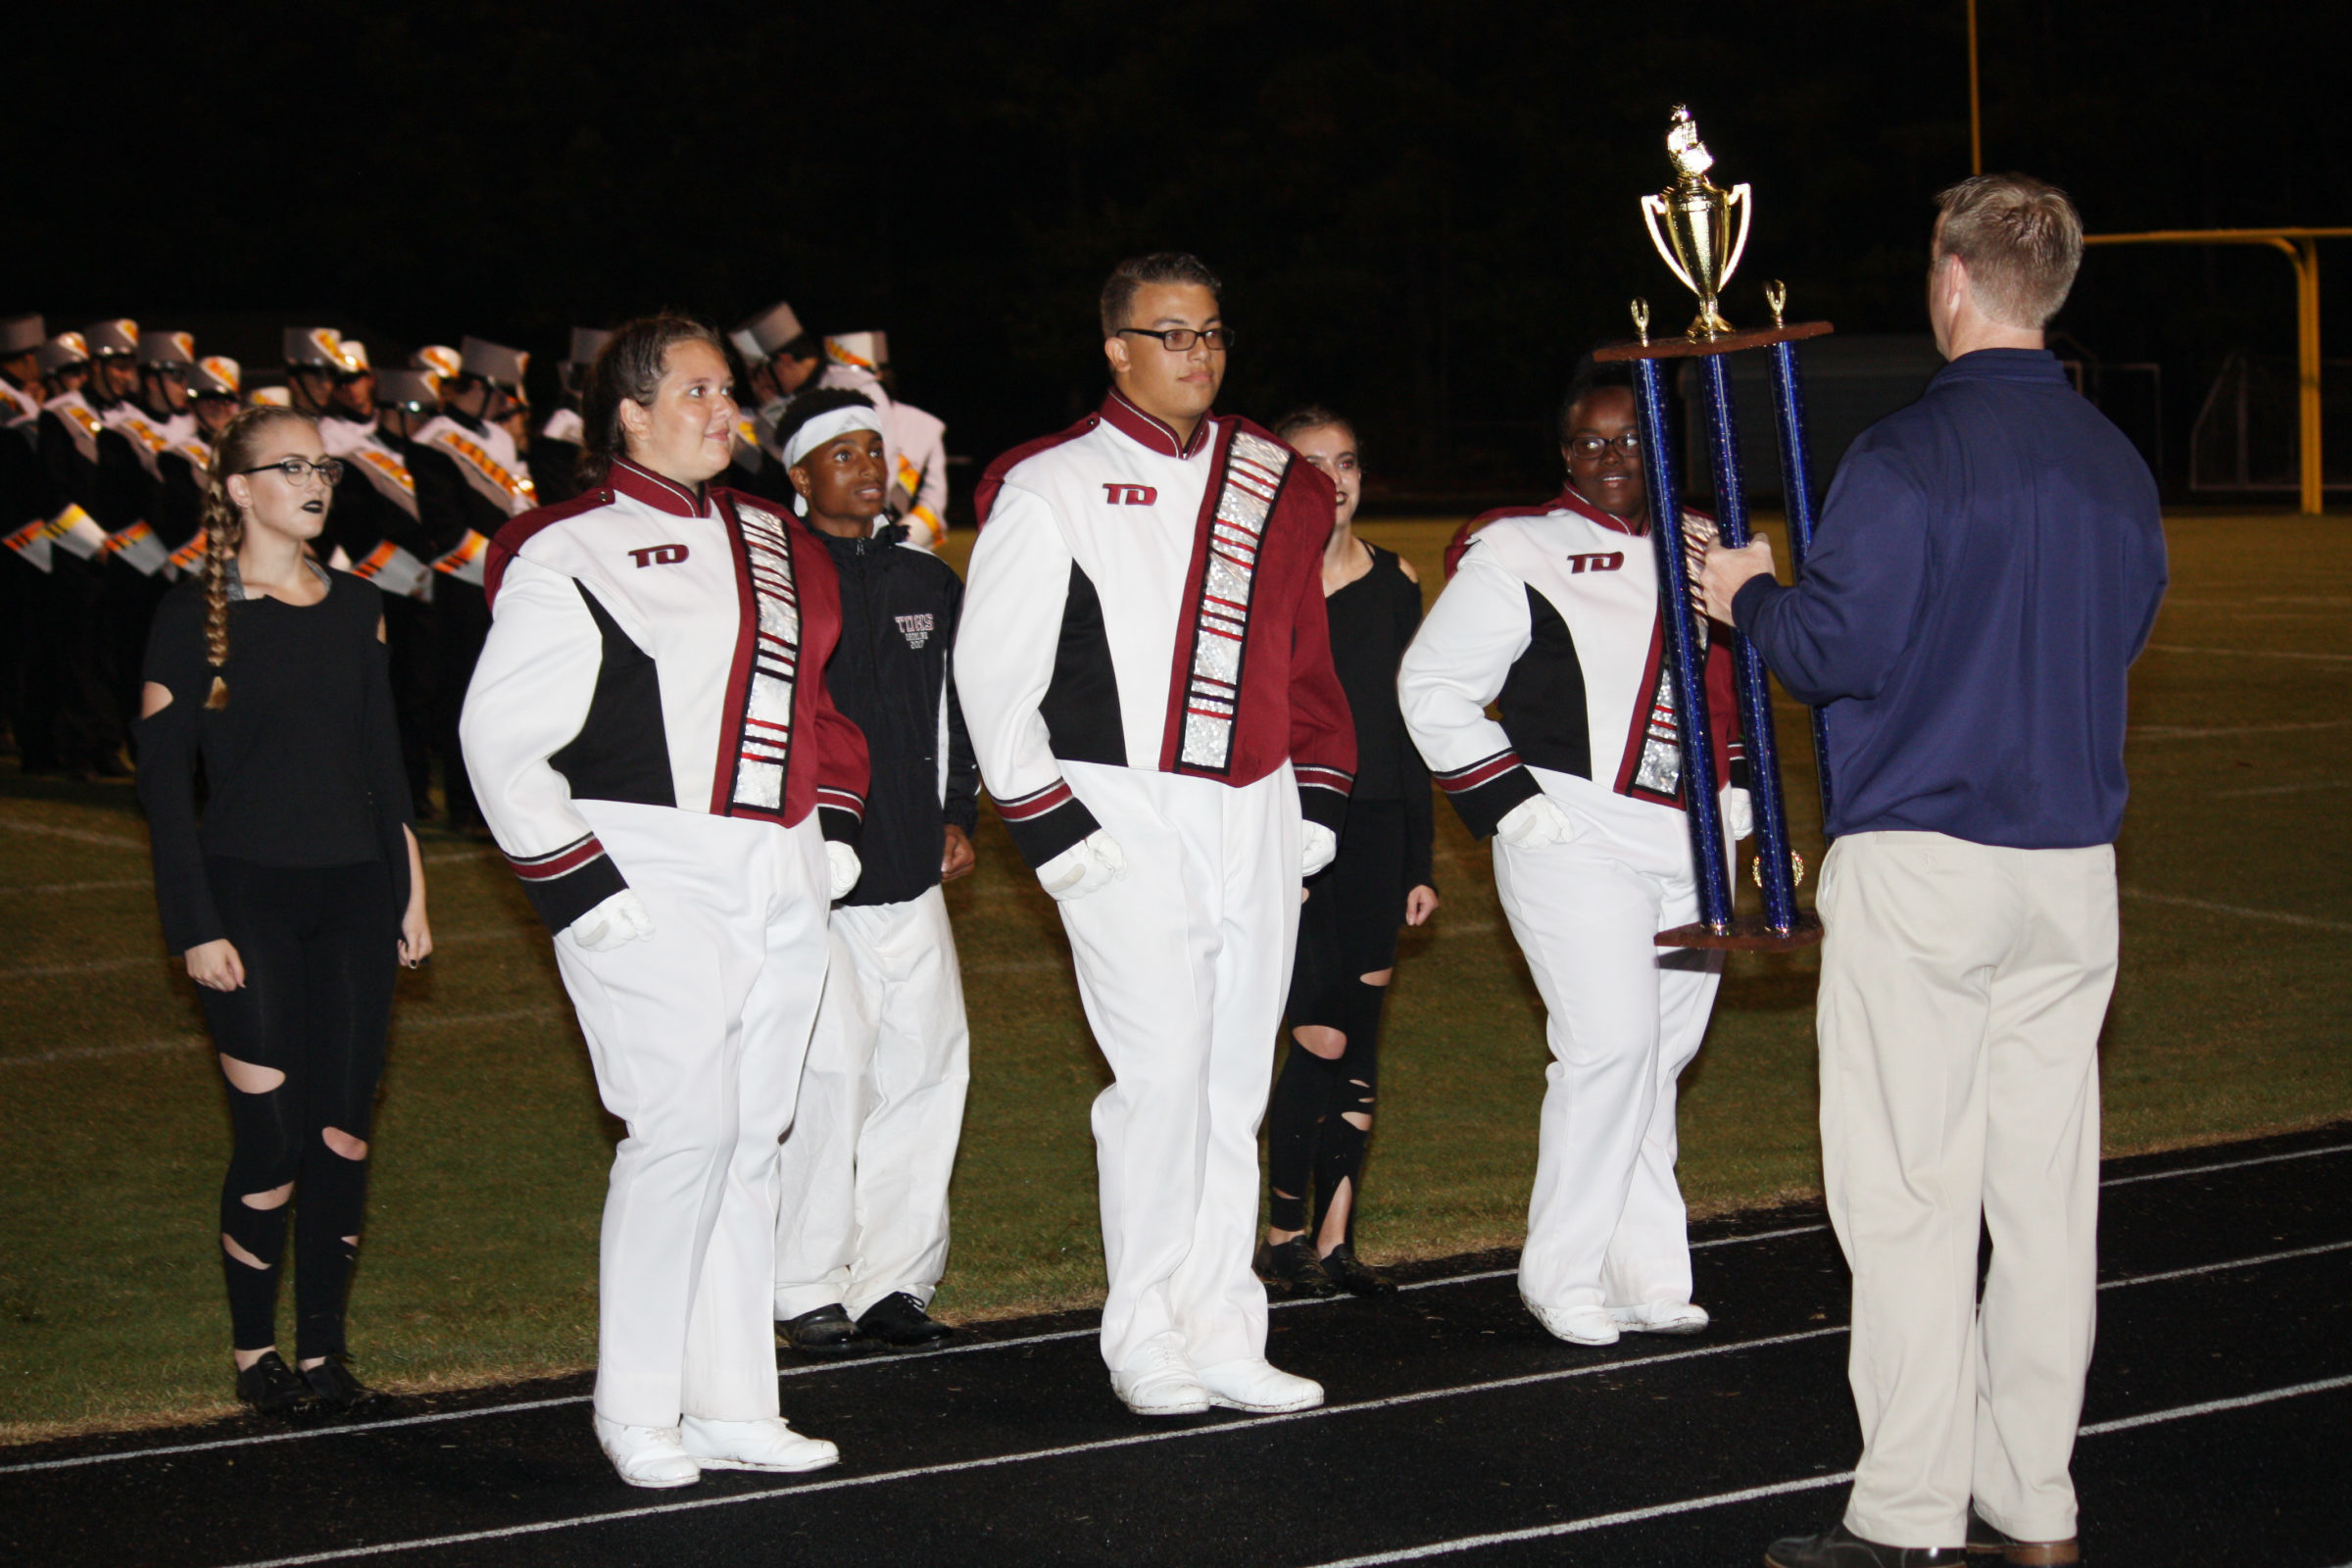 Twelfth Annual Showcase Of Bands Is Set For October 13